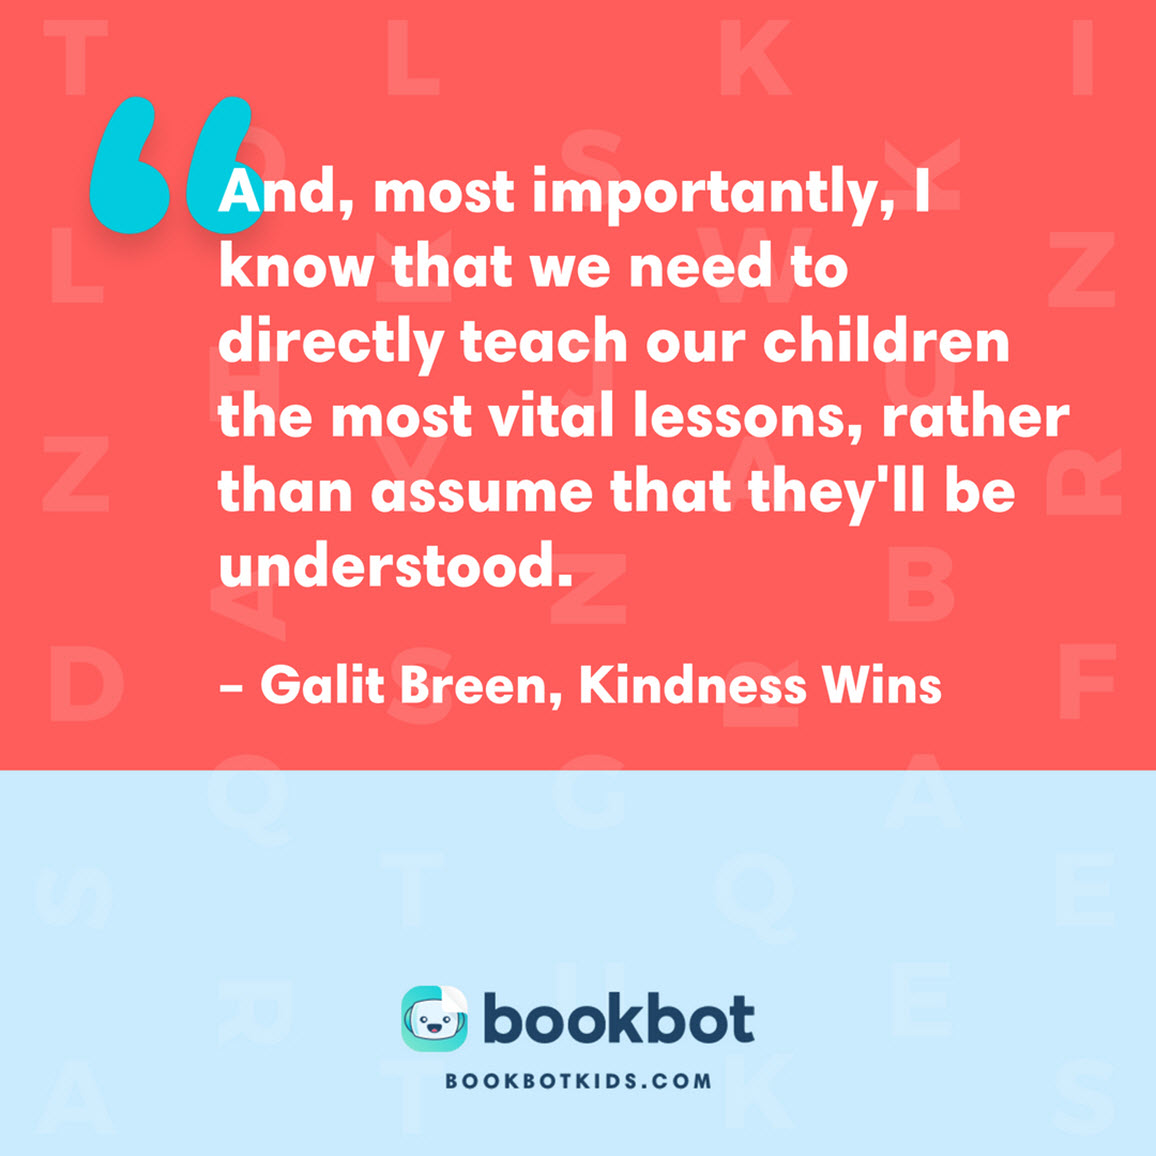 And, most importantly, I know that we need to directly teach our children the most vital lessons, rather than assume that they'll be understood. – Galit Breen, Kindness Wins